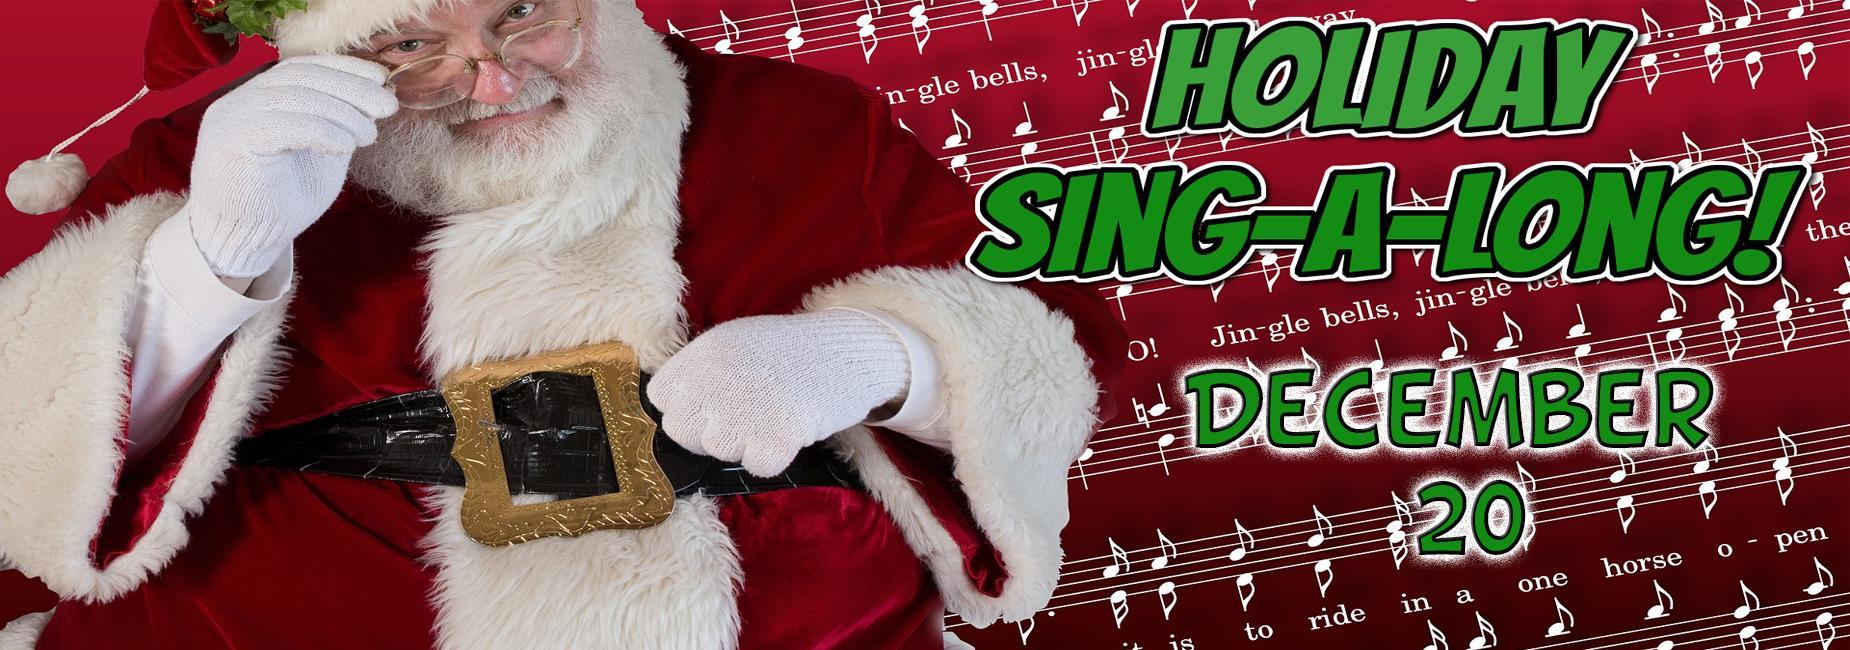 Holiday sing-a-long December 20